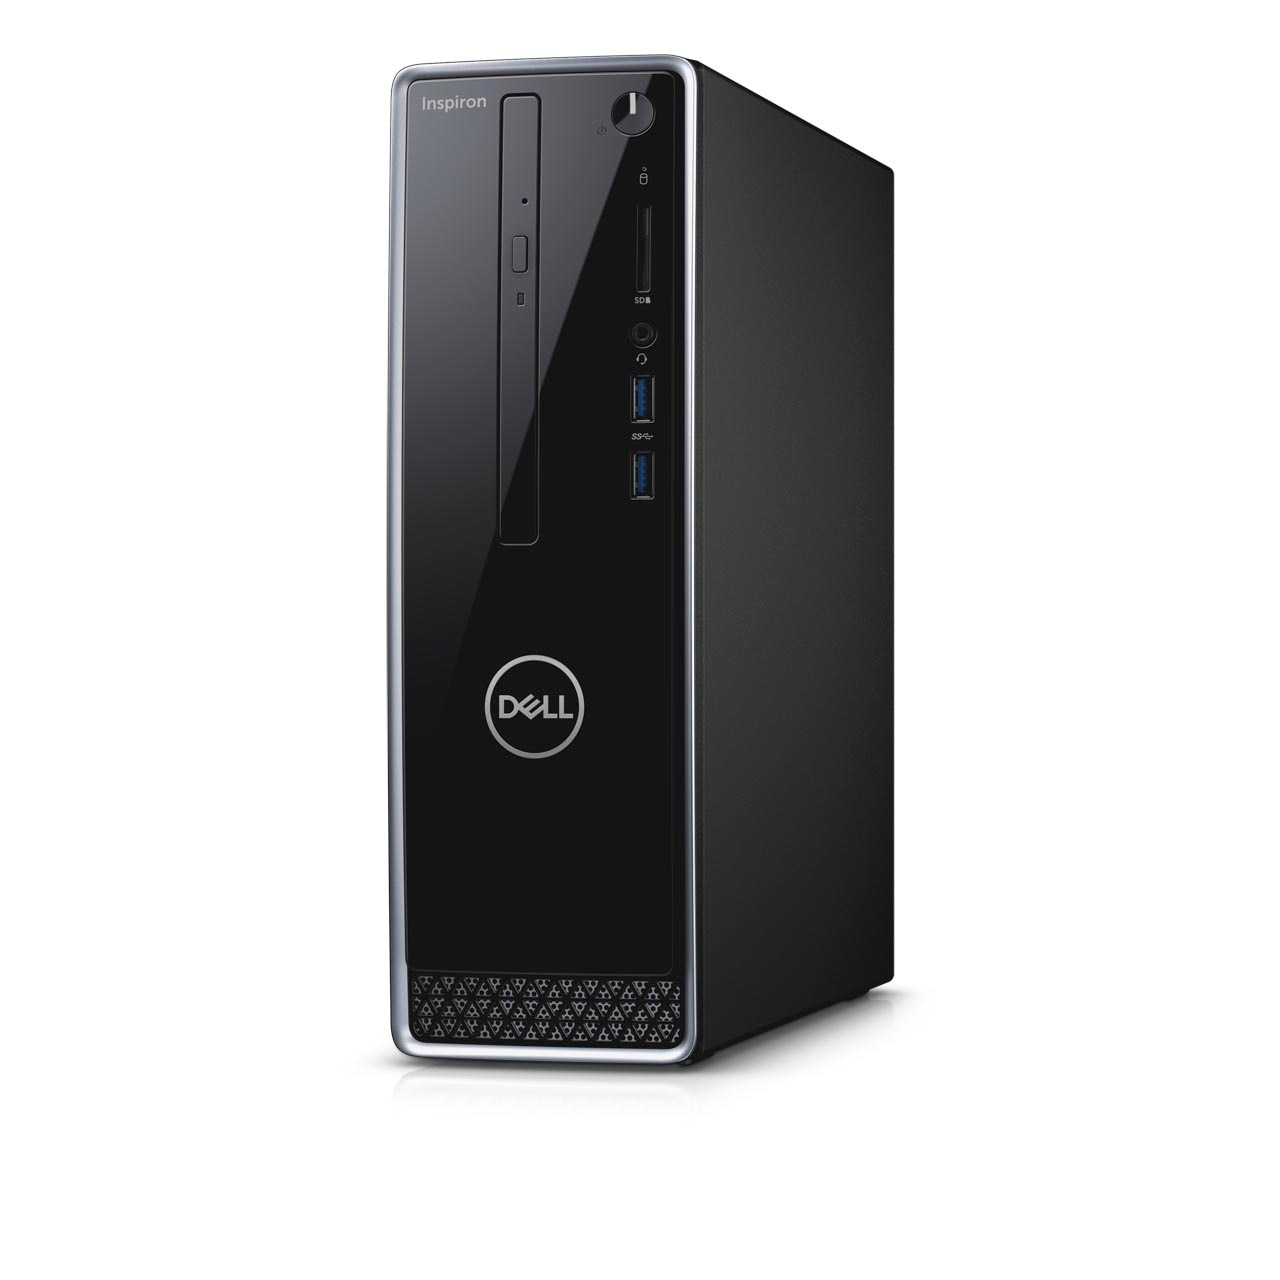 Inspiron 3471 Small Desktop